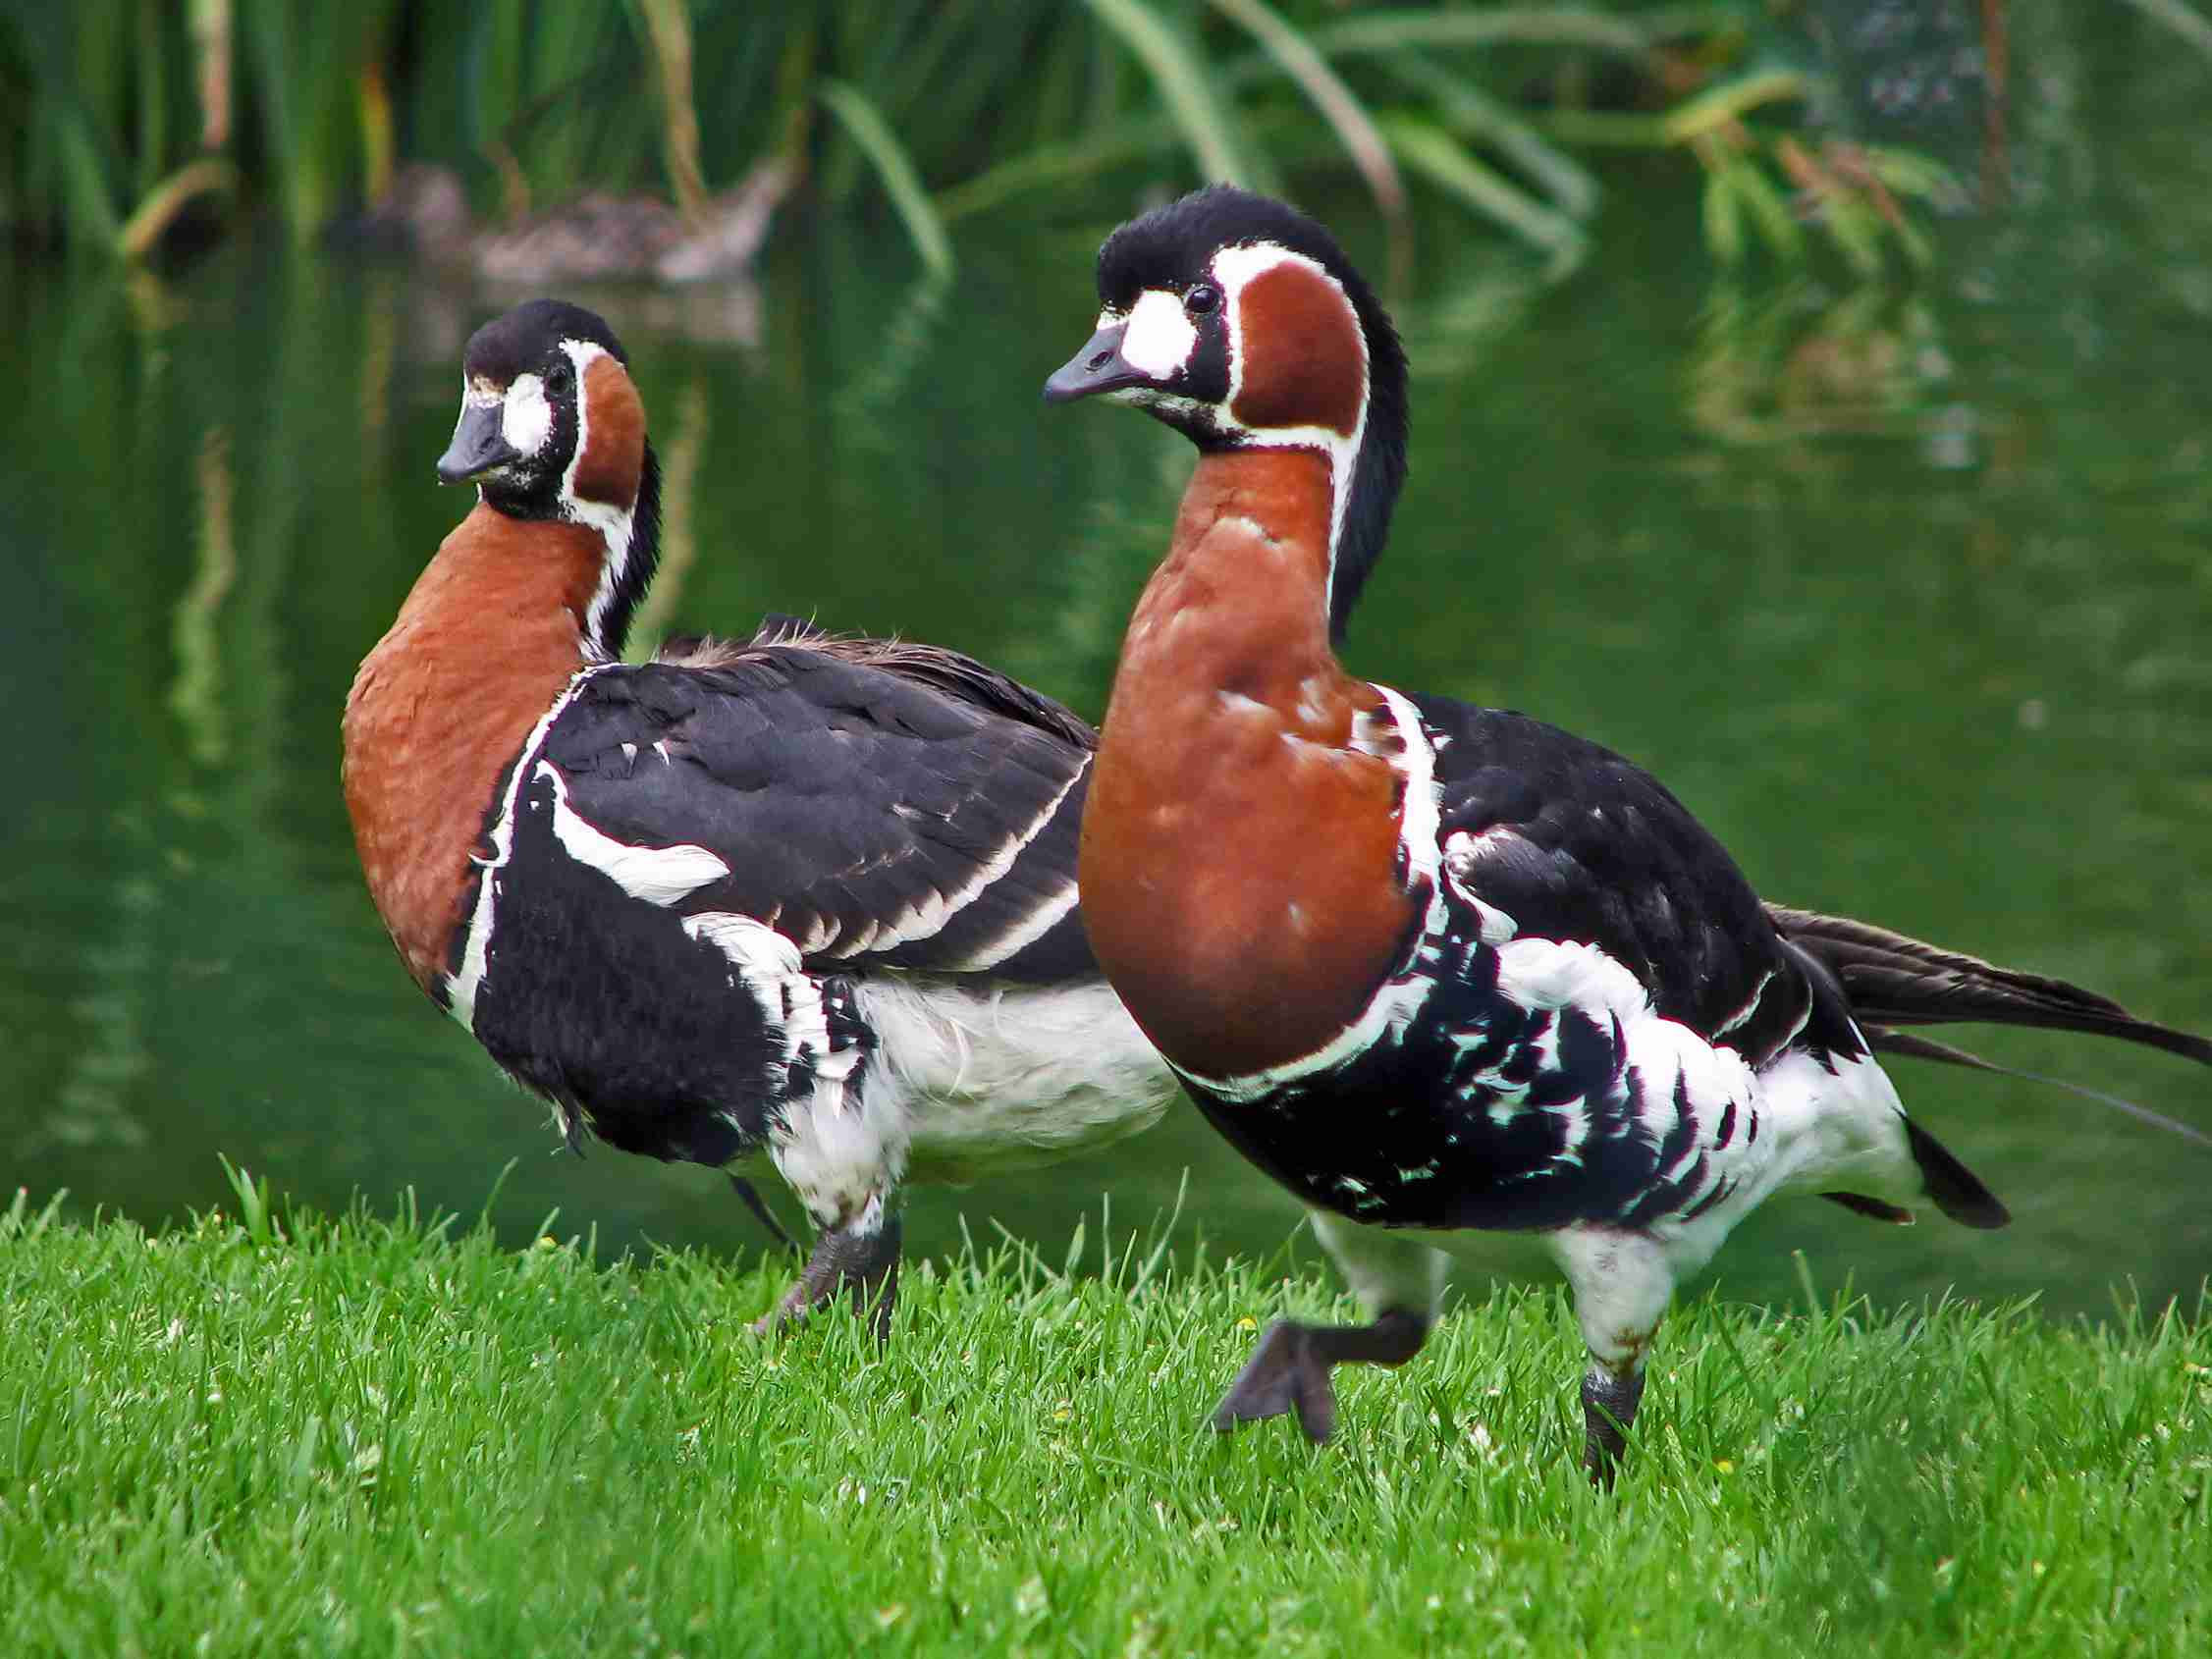 Red breasted geese on the grass